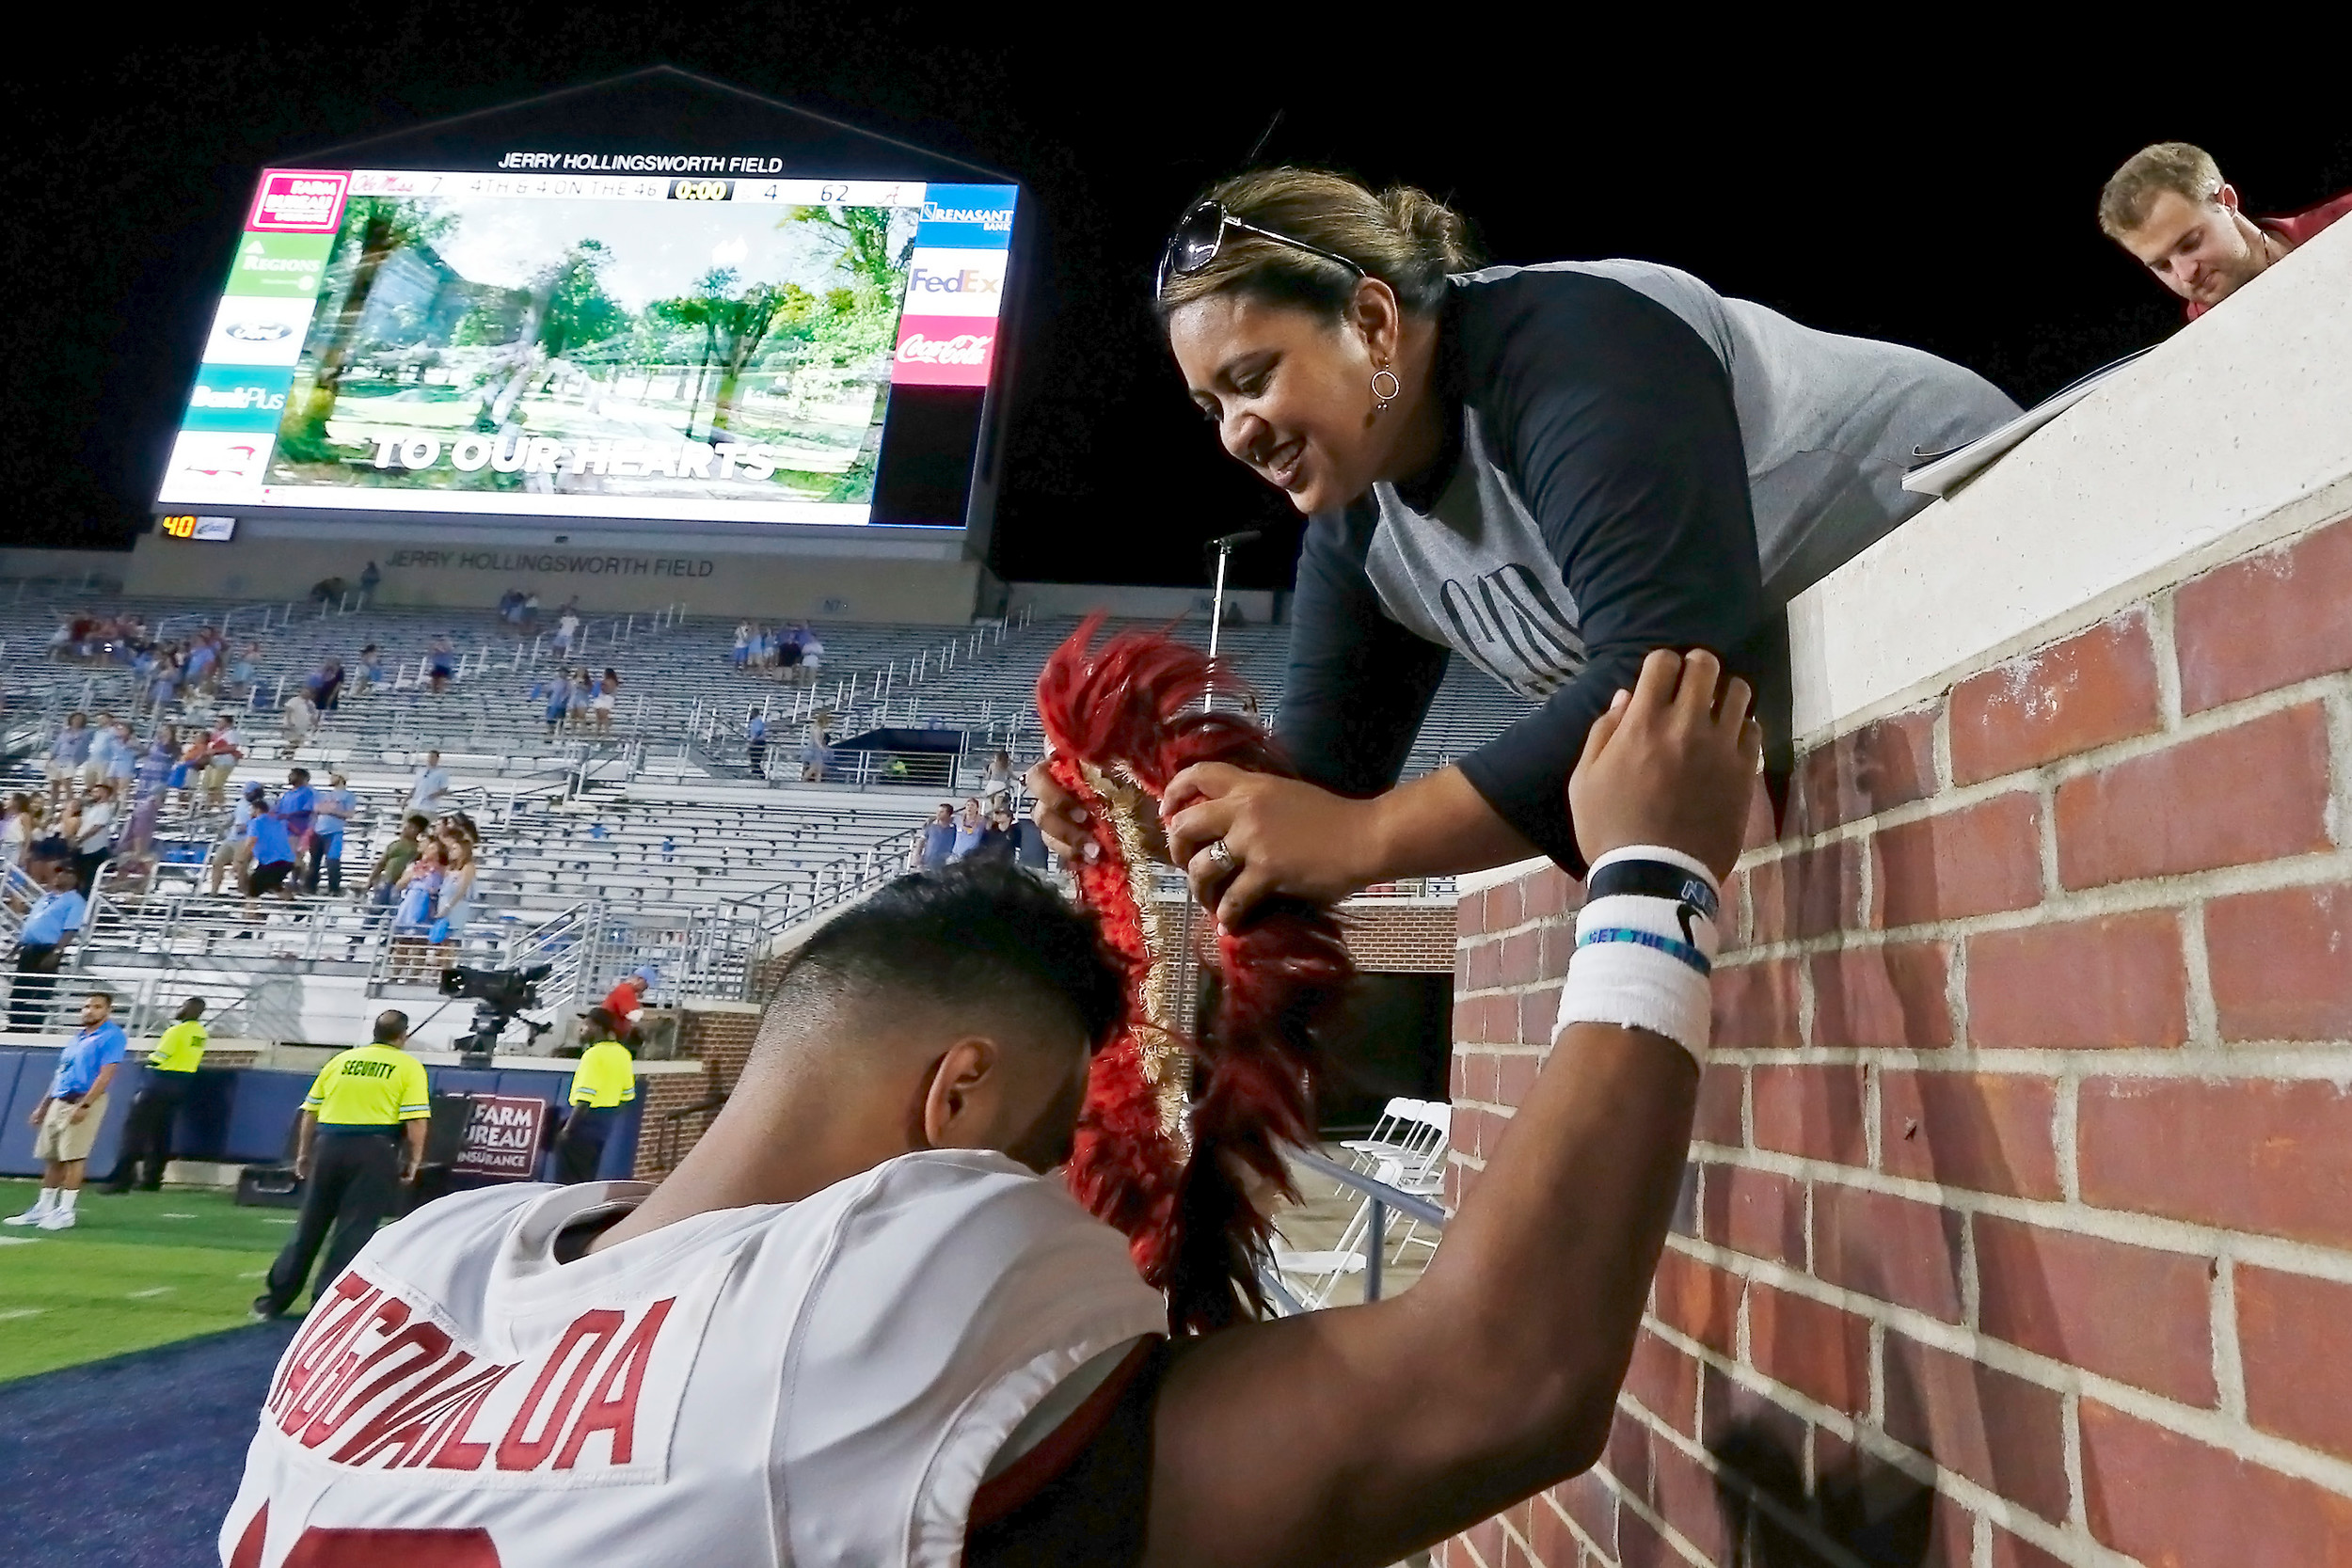 Alabama Crimson Tide quarterback Tua Tagovailoa (13) with his mother after the game between the University of Alabama and Ole Miss at Vaught-Hemingway Stadium. Jason Clark / Daily Mountain Eagle